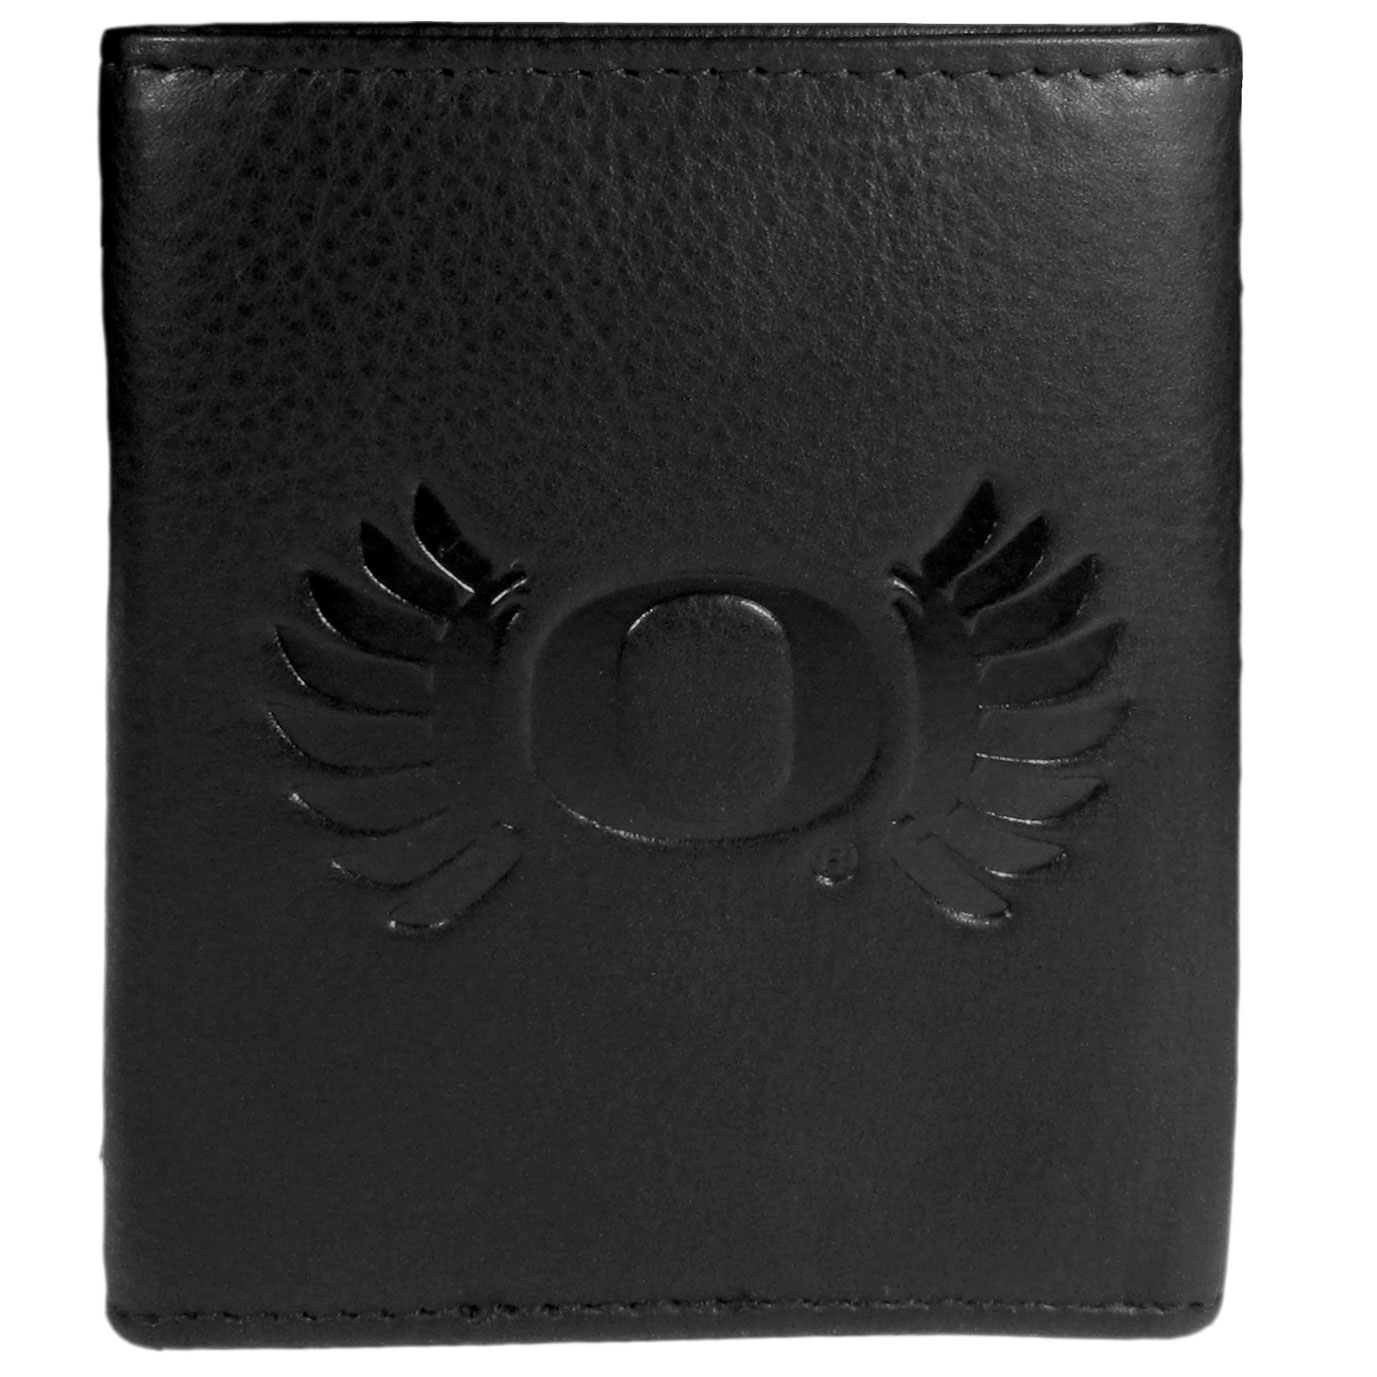 Oregon Ducks Embossed Leather Tri-fold Wallet - This stylish leather wallet is made of high quality leather with a supple feel and classic look. The front of the tri-fold style wallet has a deeply embossed Oregon Ducks logo. The billfold is packed with features that will allow to keep organized, lots of credit card slots, windowed ID slot, large pockets for bills and a removable sleeve with extra slots for even more storage. This is a must-have men's fashion accessory that would make any fan very proud to own.